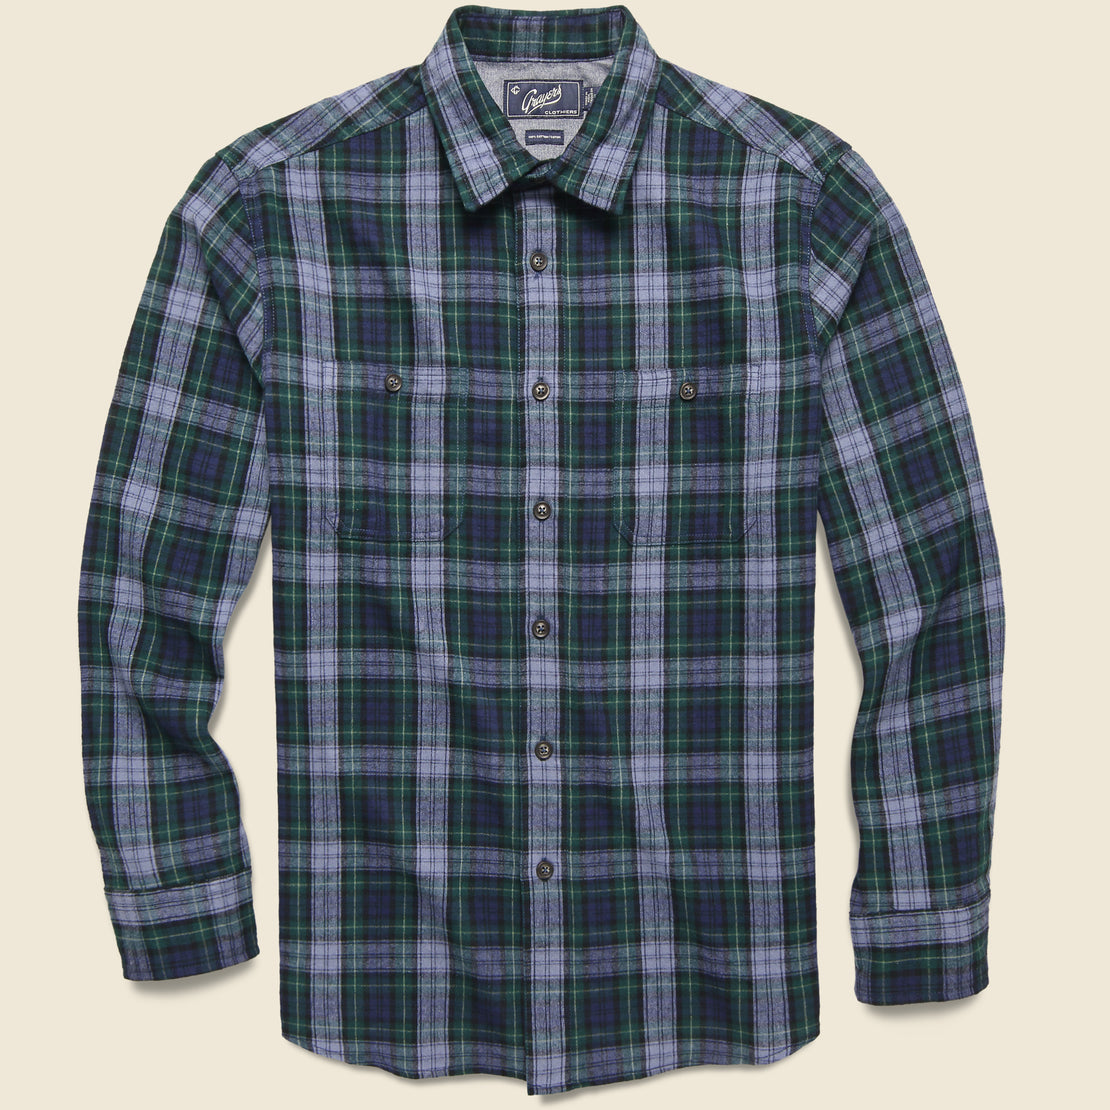 Grayers Rexford Mid-weight Plaid Shirt - Green/Blue